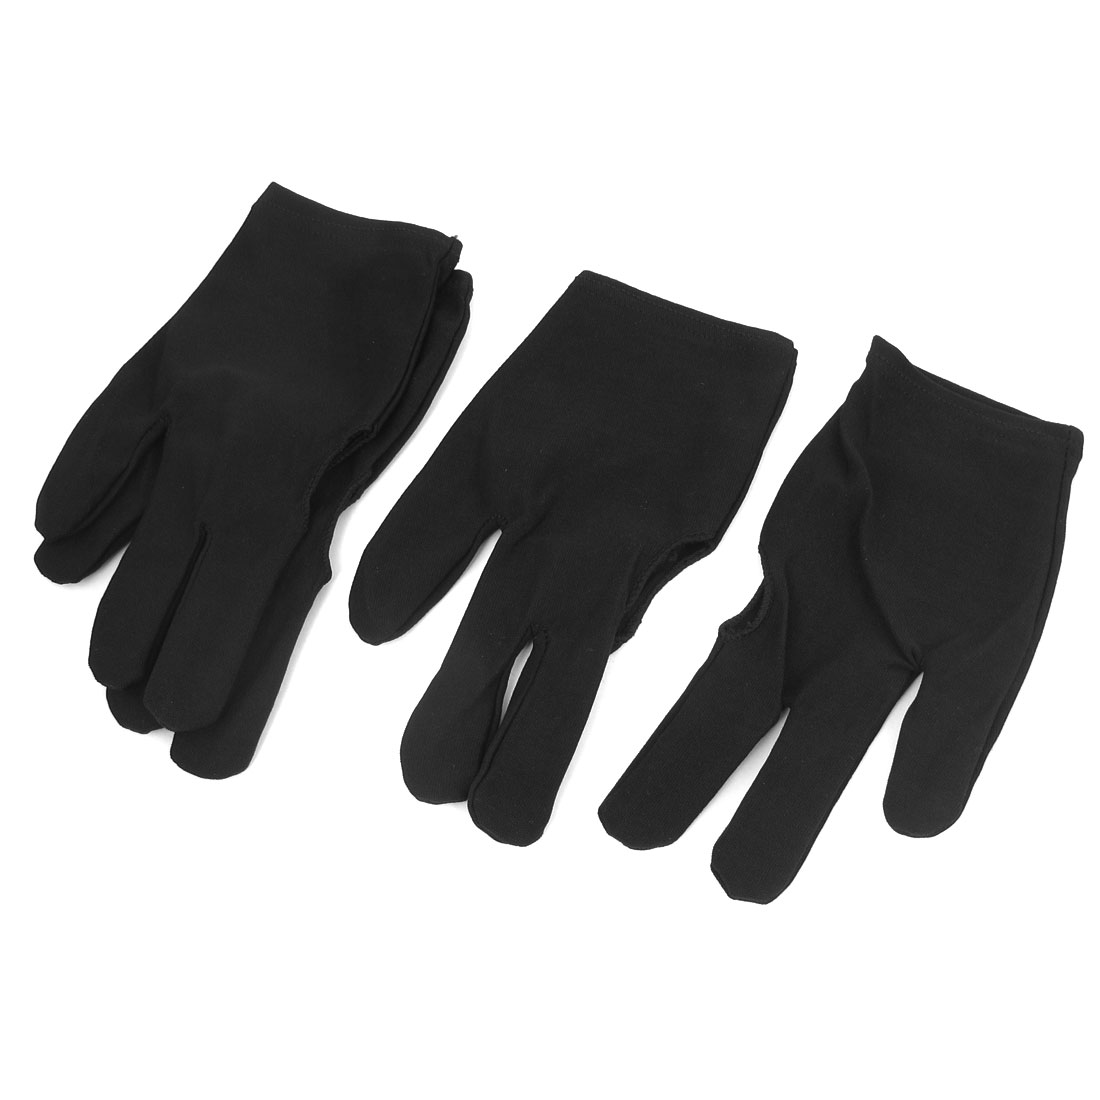 2 Pairs Black Stretch Sport Billiard 3 Fingers Gloves for Pool Cue